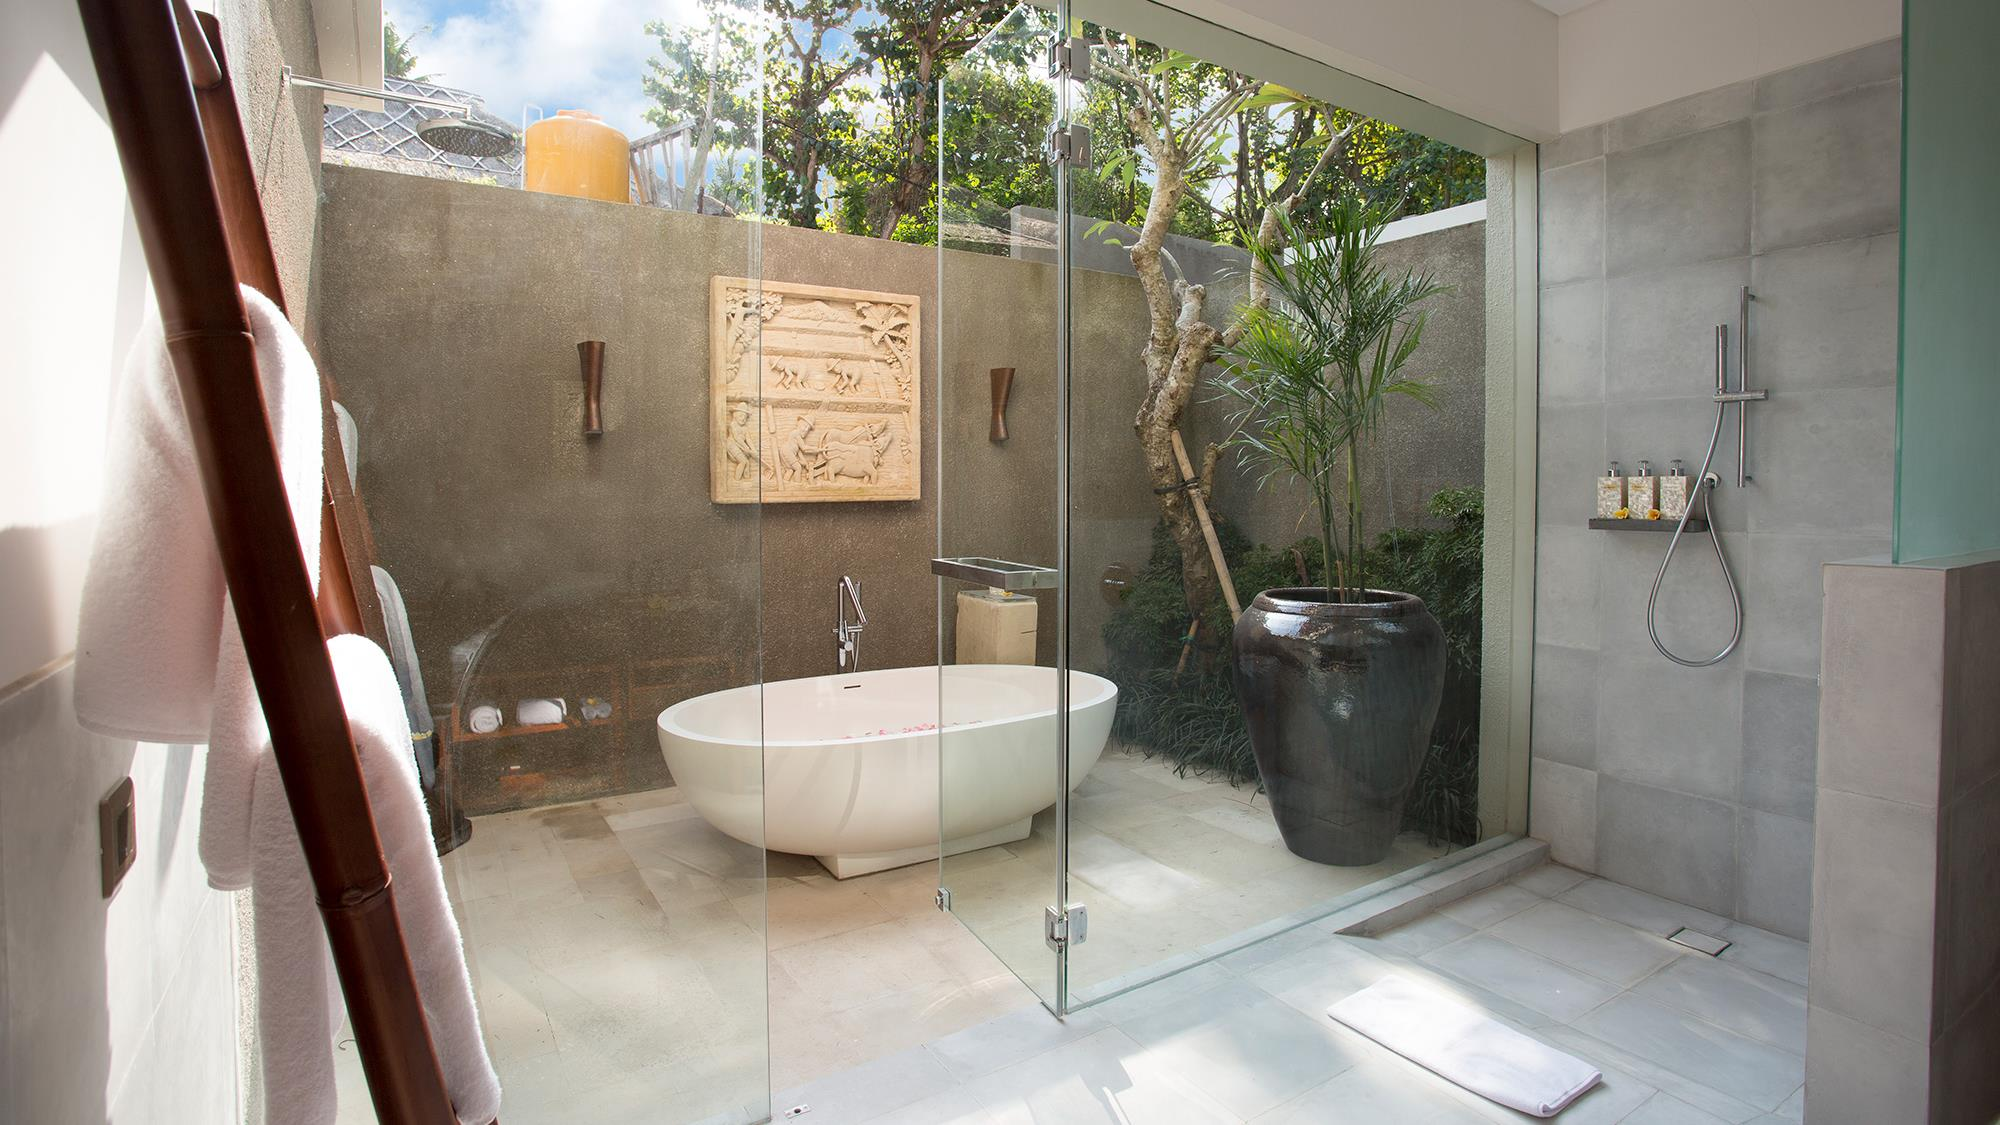 Open Plan Bathtub with Plants - Seseh Beach Villa 1 - Seseh, Bali